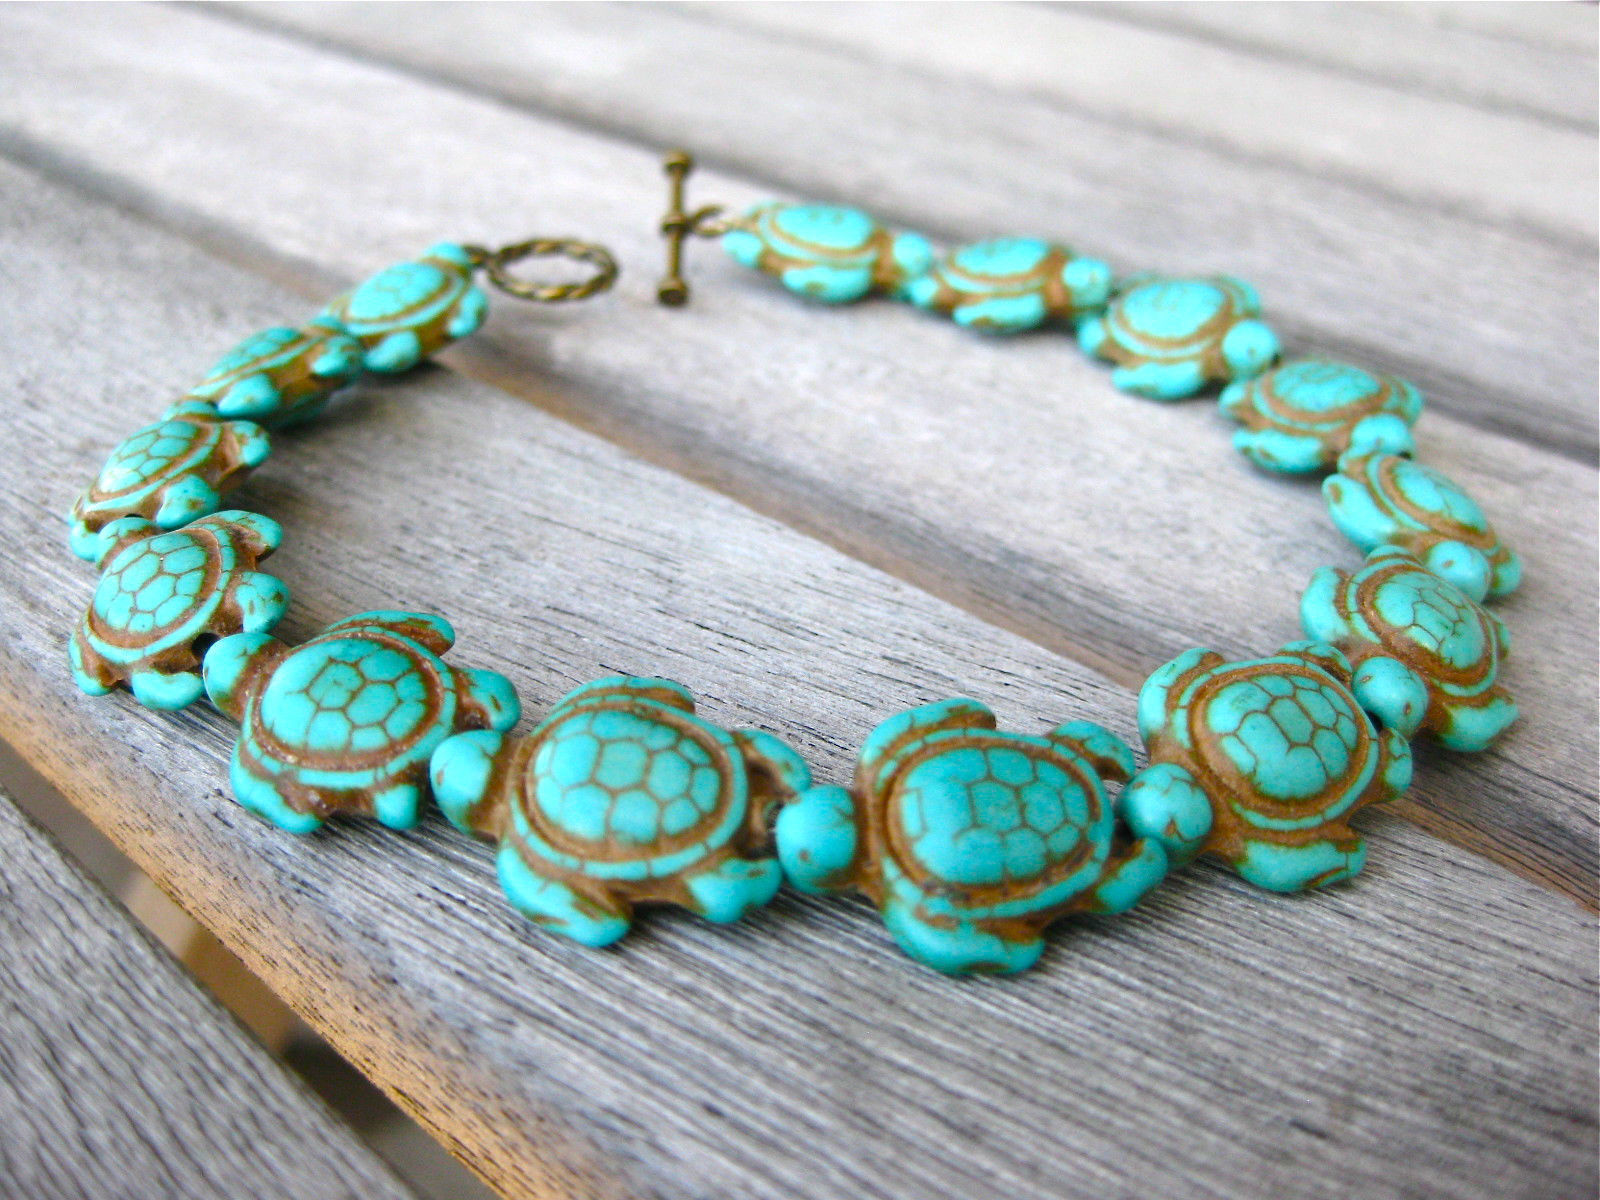 Primary image for 3 HONU 3D SEA TURTLES TORTOISE ANKLETS STONE TURQUOISE BLUE HOWLITE COPPER 9.5 ""